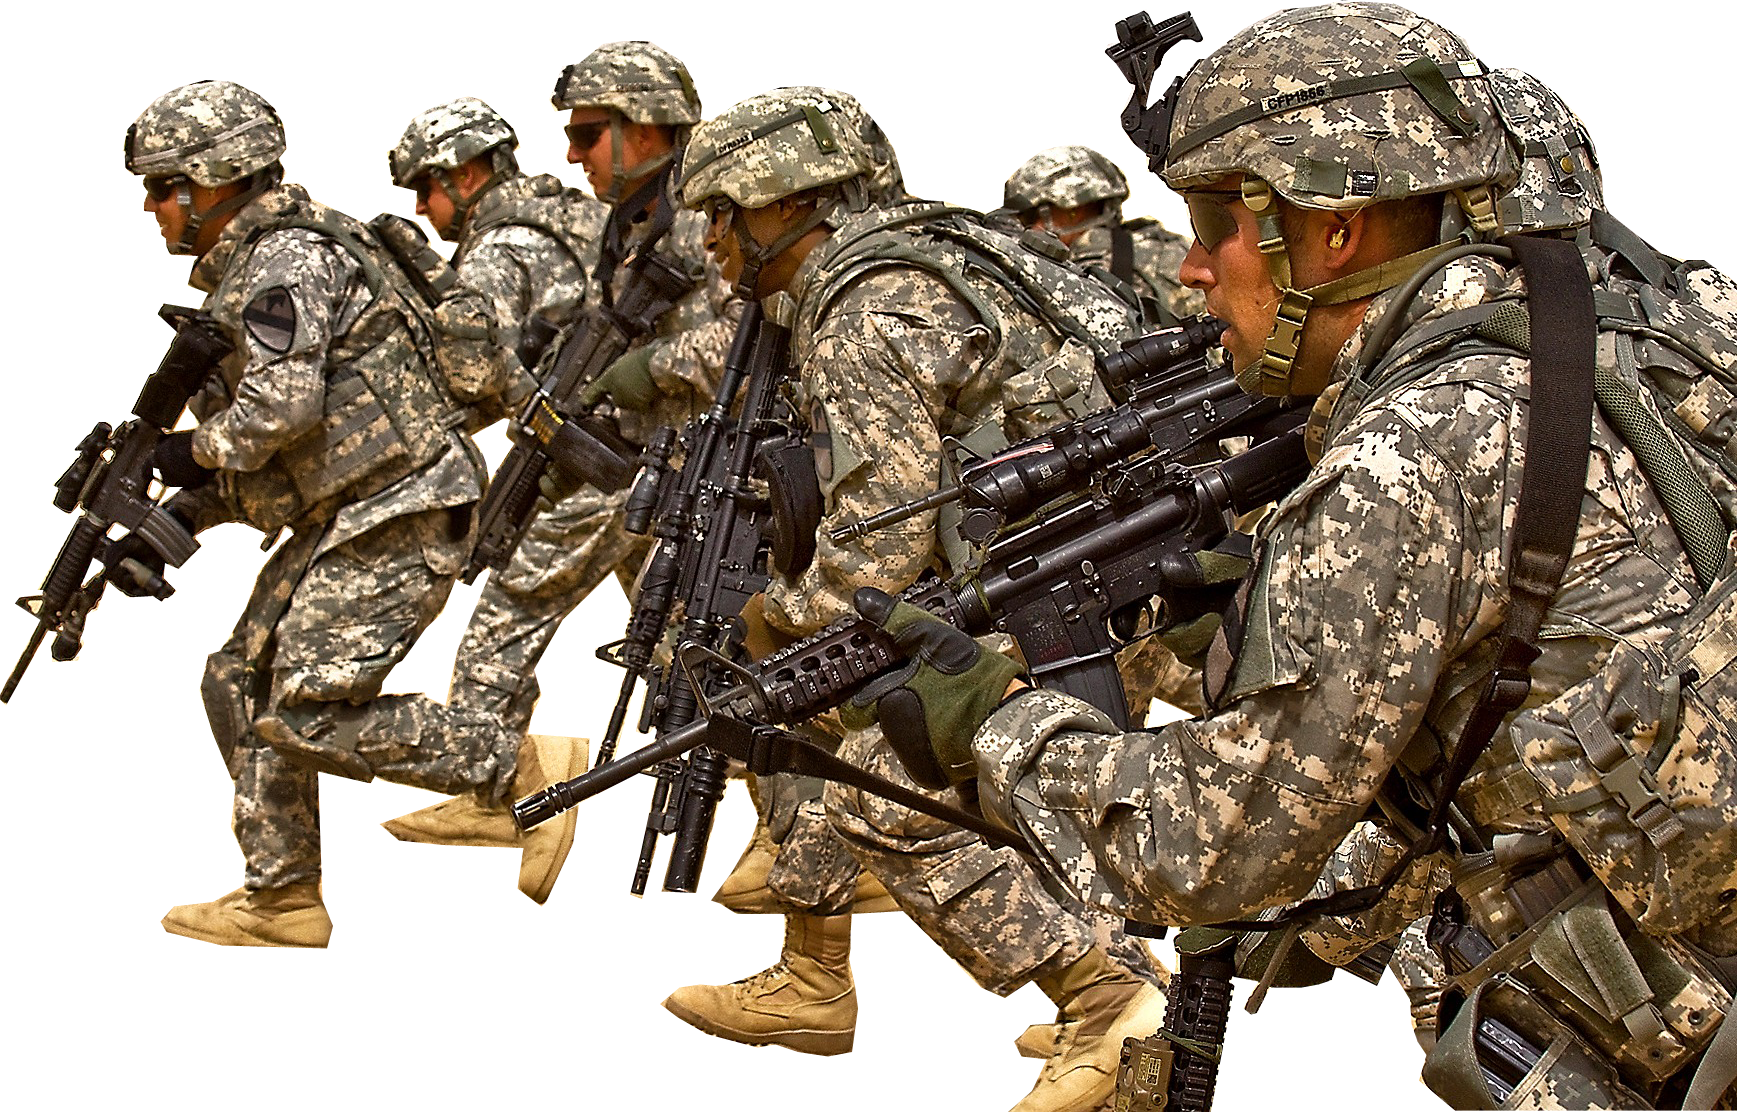 Png Military Soldier - Soldier Png Photo, Transparent background PNG HD thumbnail